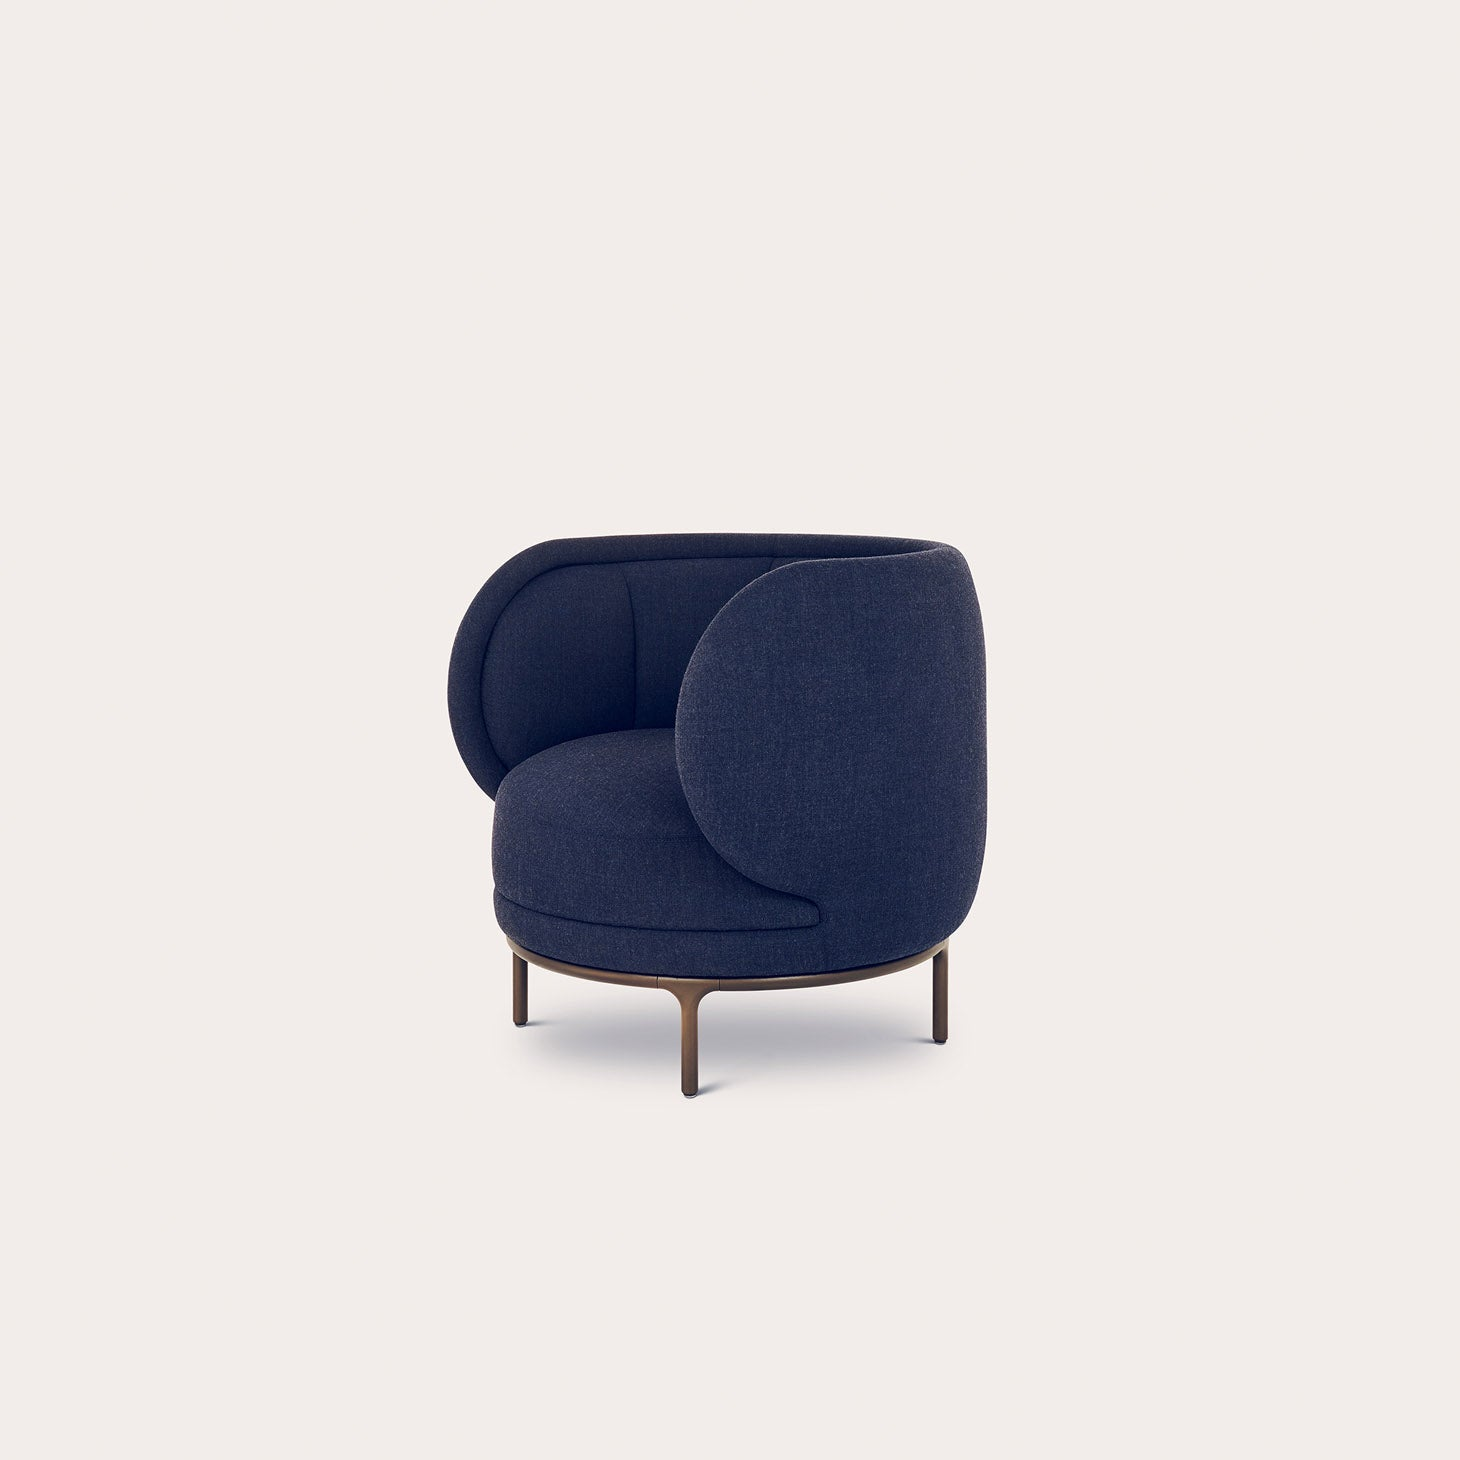 Vuelta Seating Jaime Hayon Designer Furniture Sku: 758-240-10115